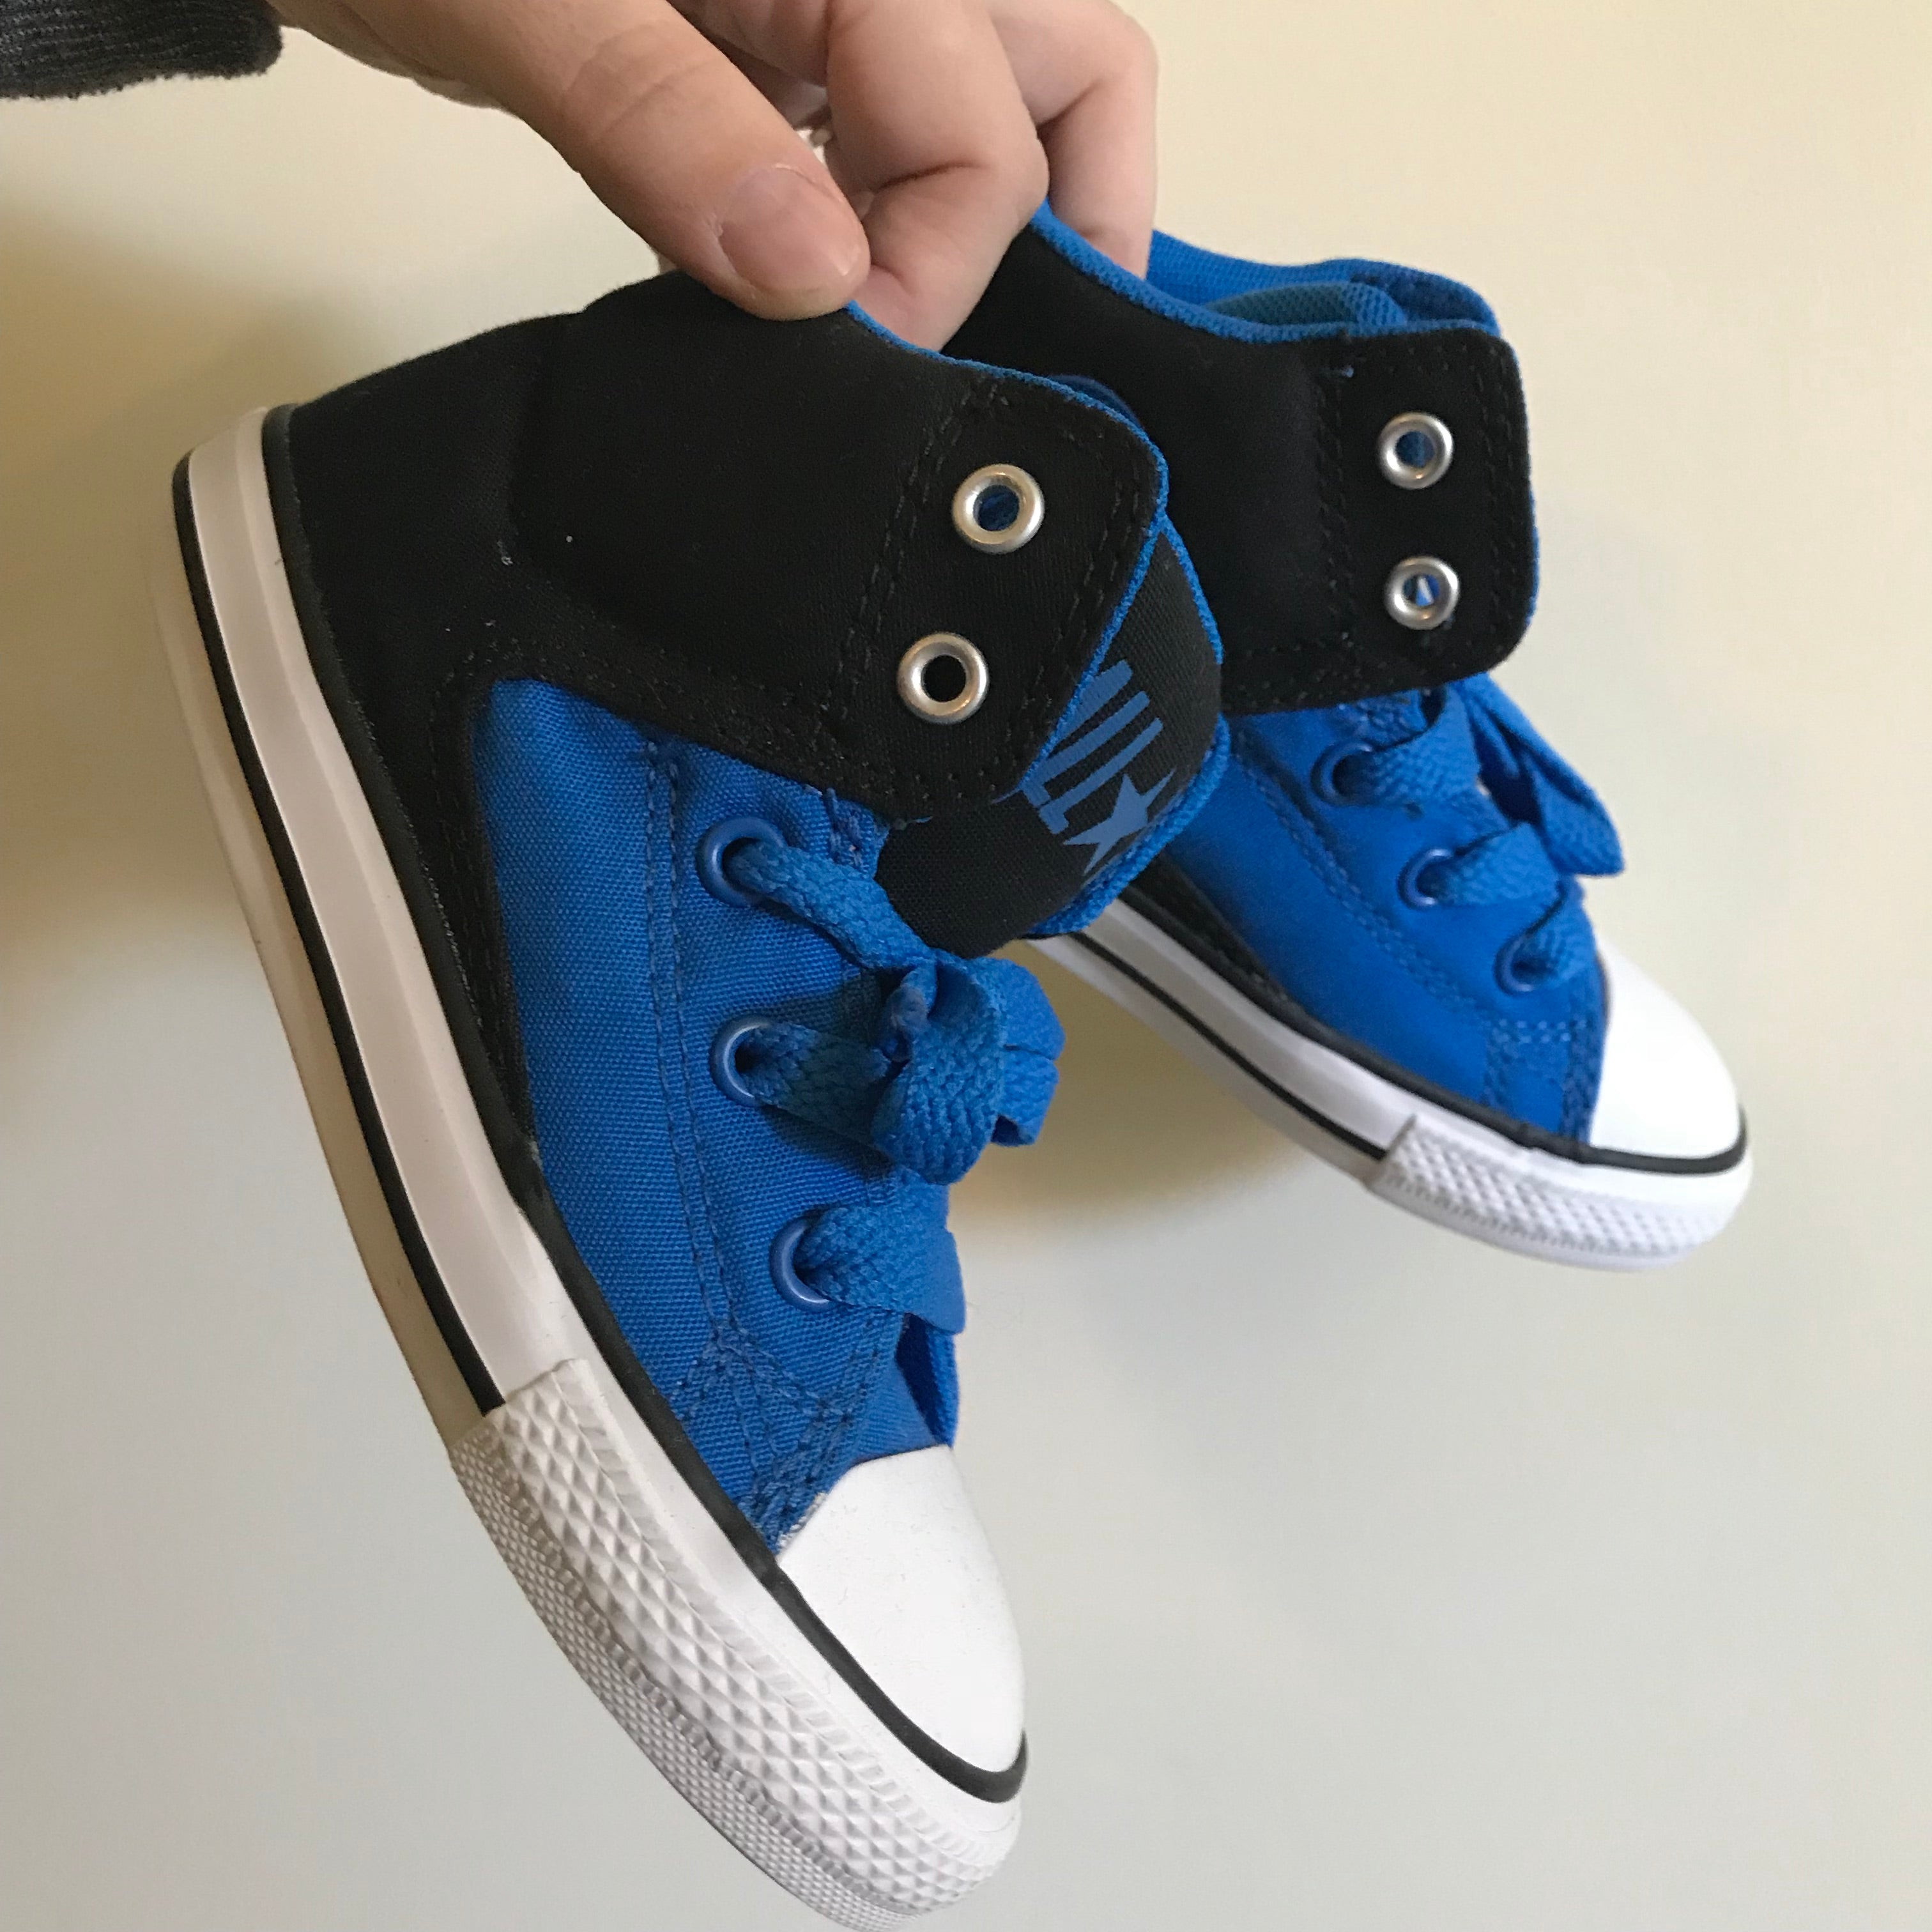 CONVERSE Toddler Mid Cab NTTL - Black/Blue